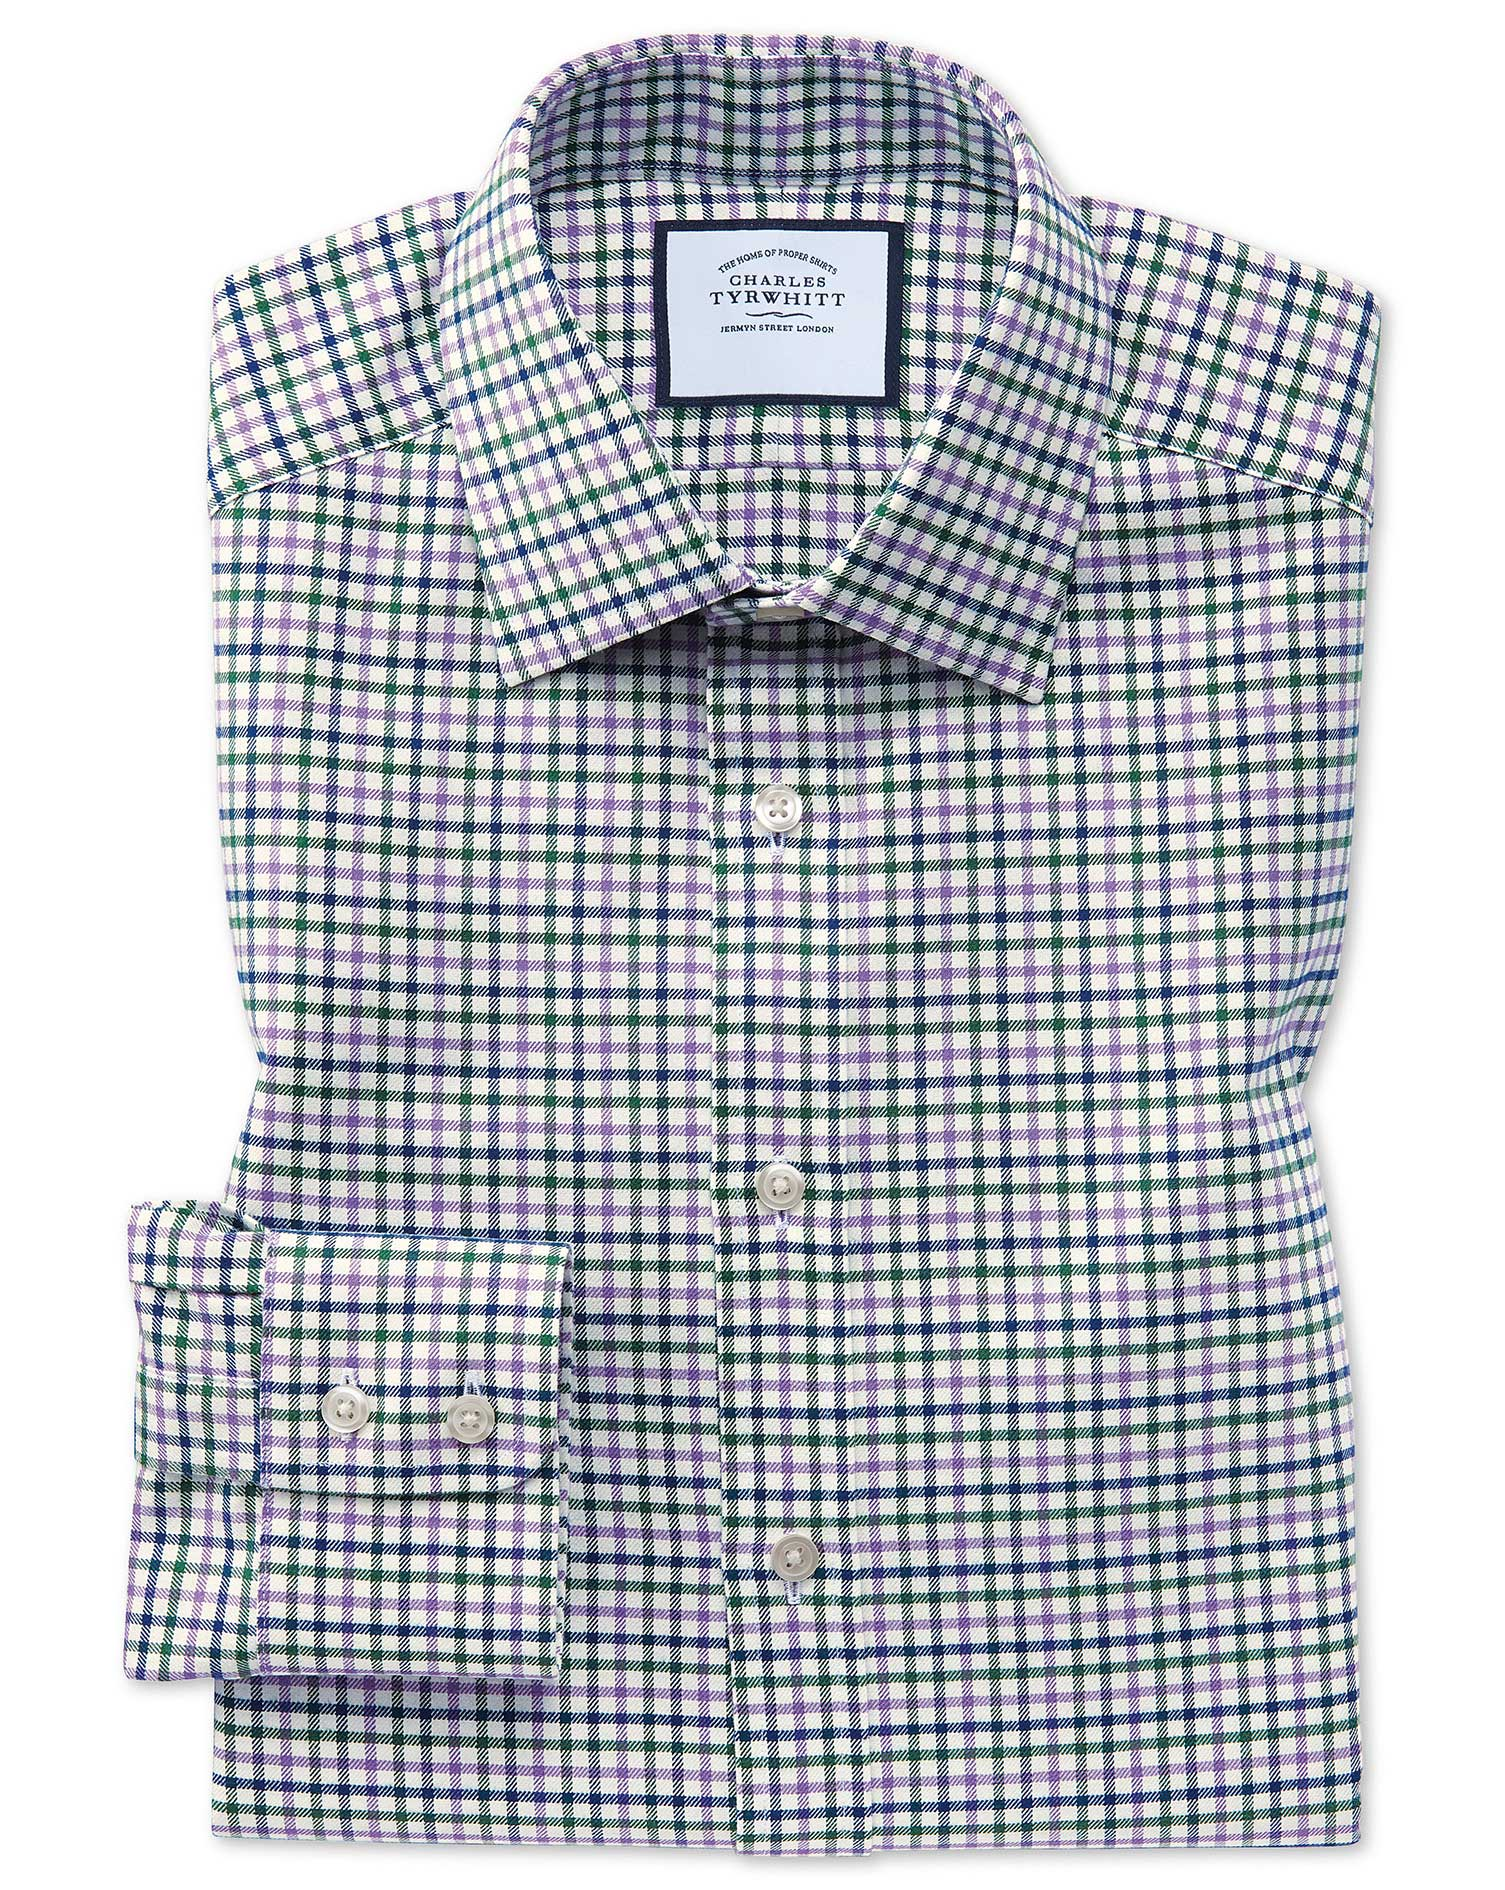 Classic Fit Purple and Green Country Check Cotton Formal Shirt Single Cuff Size 17.5/36 by Charles T